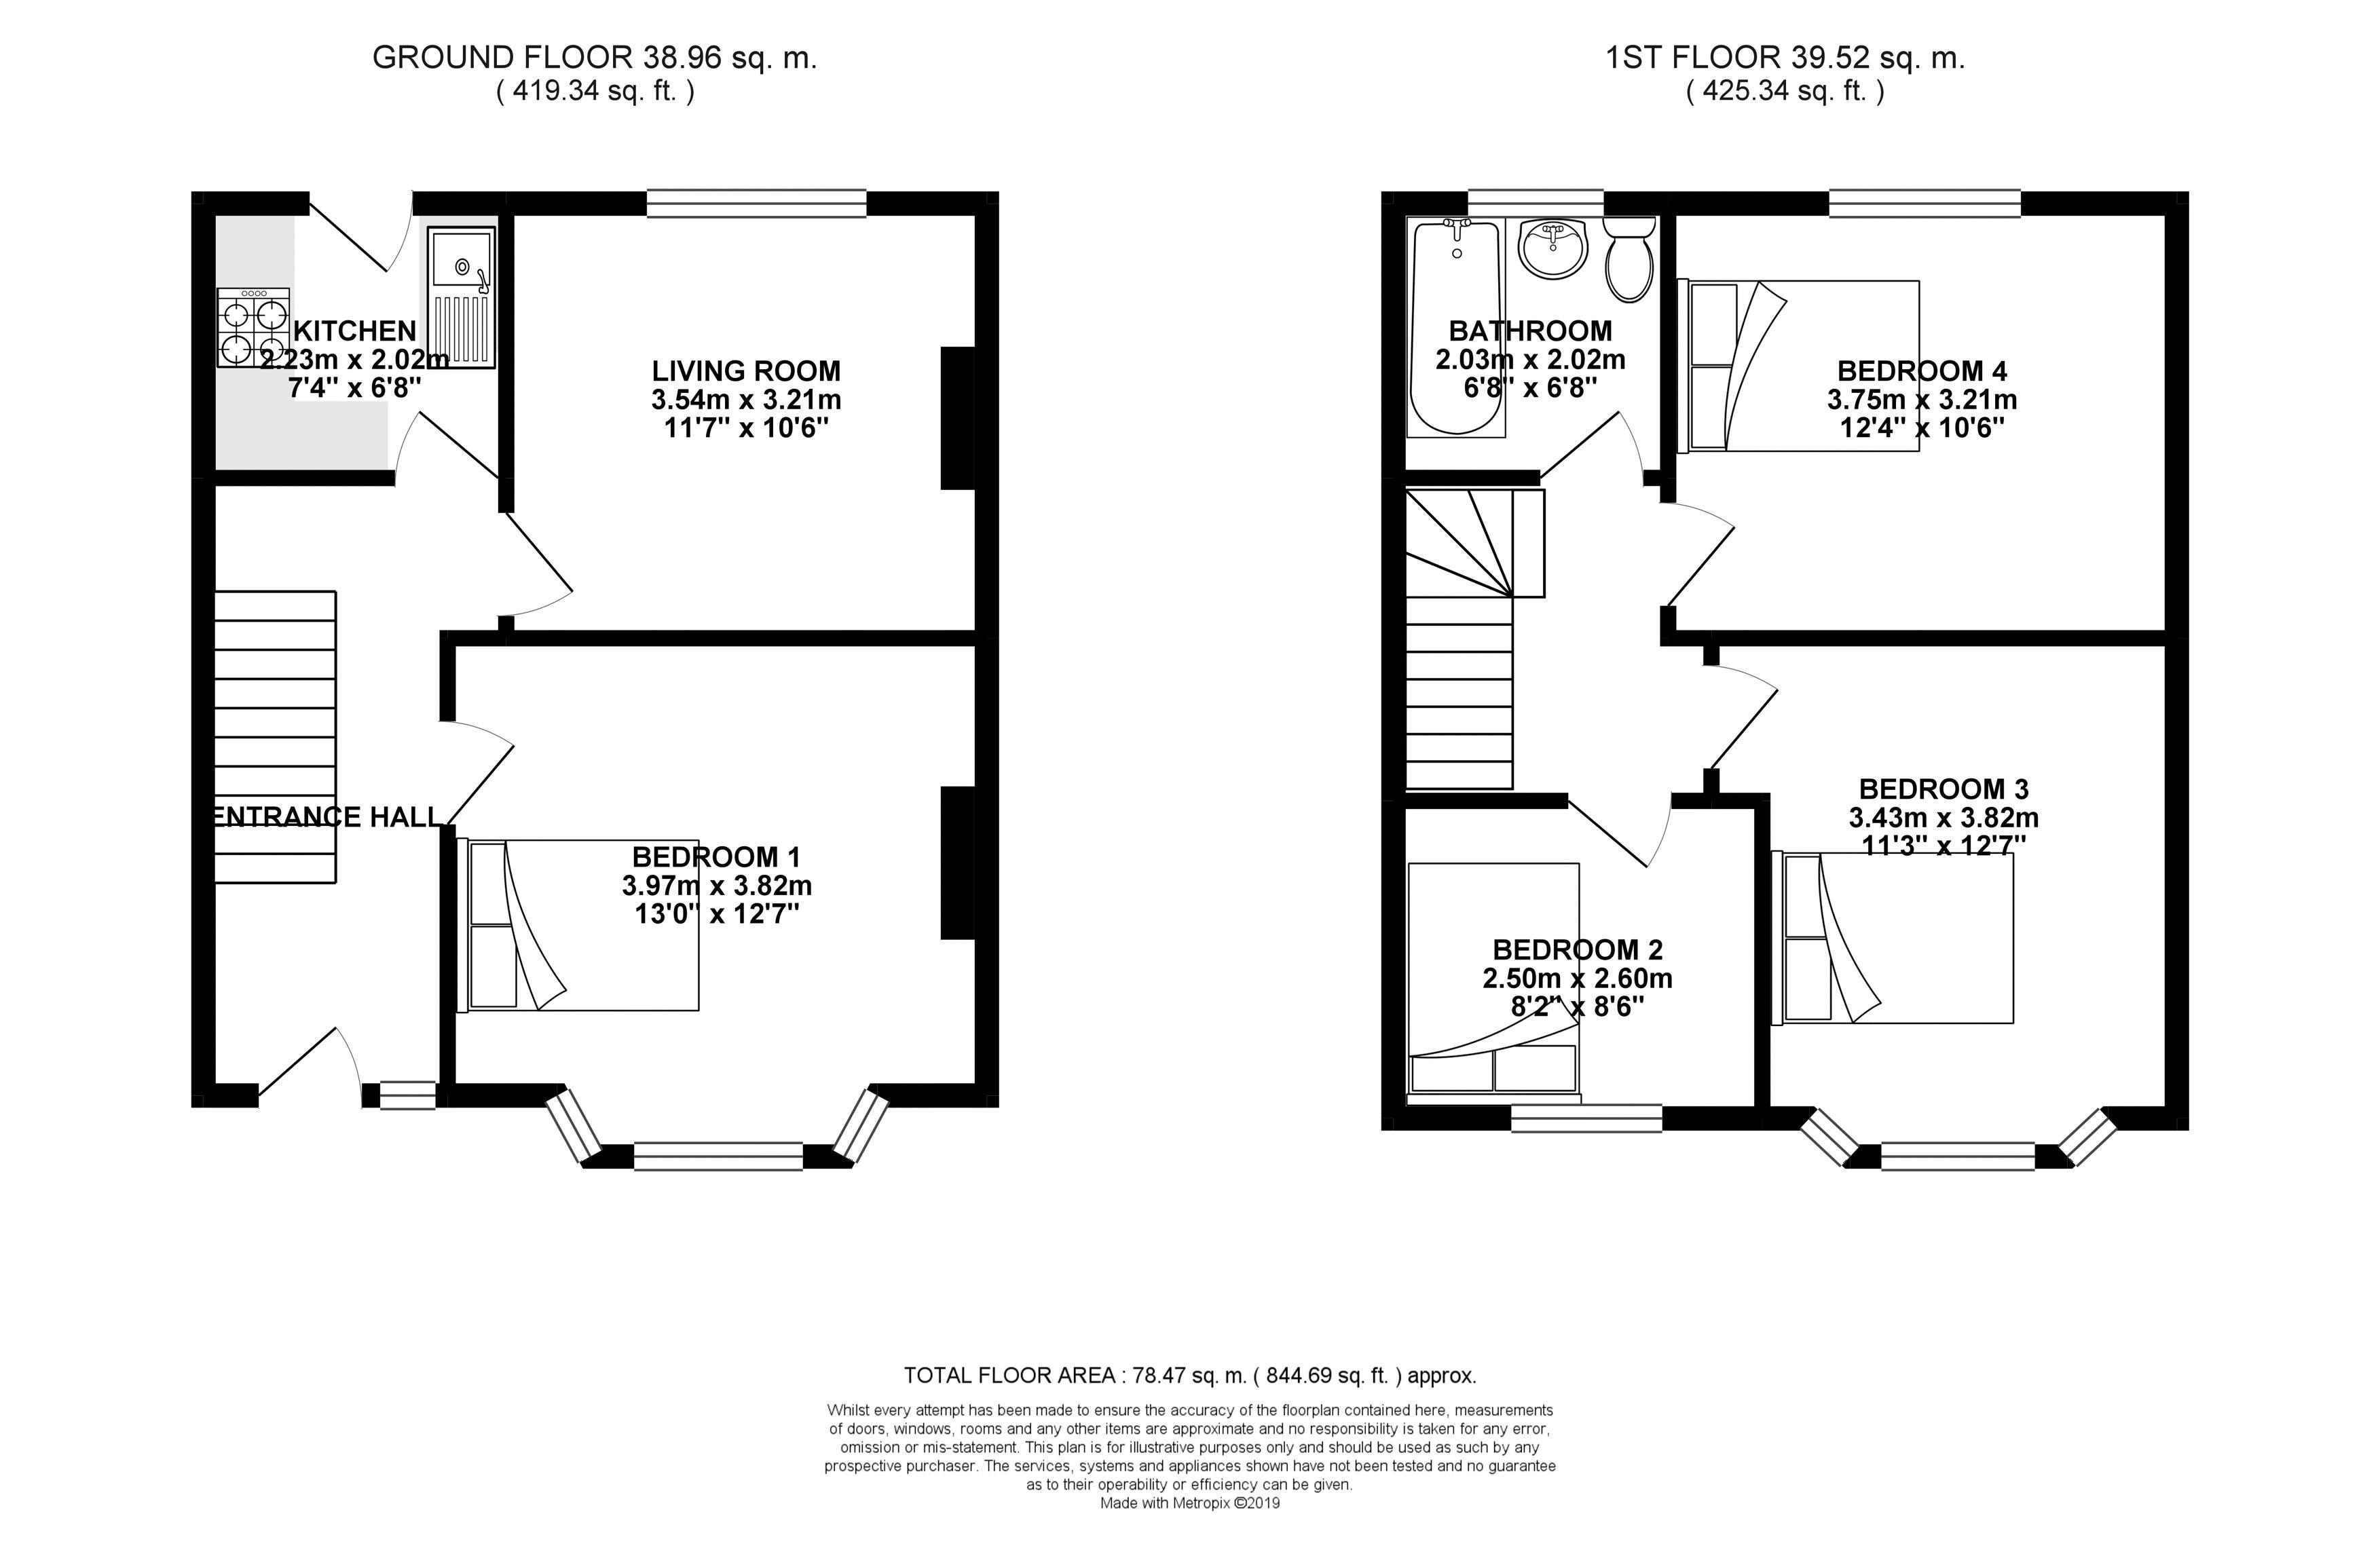 Floor plans for Crayford Road, Brighton property for sale in Coombe Road, Brighton by Coapt